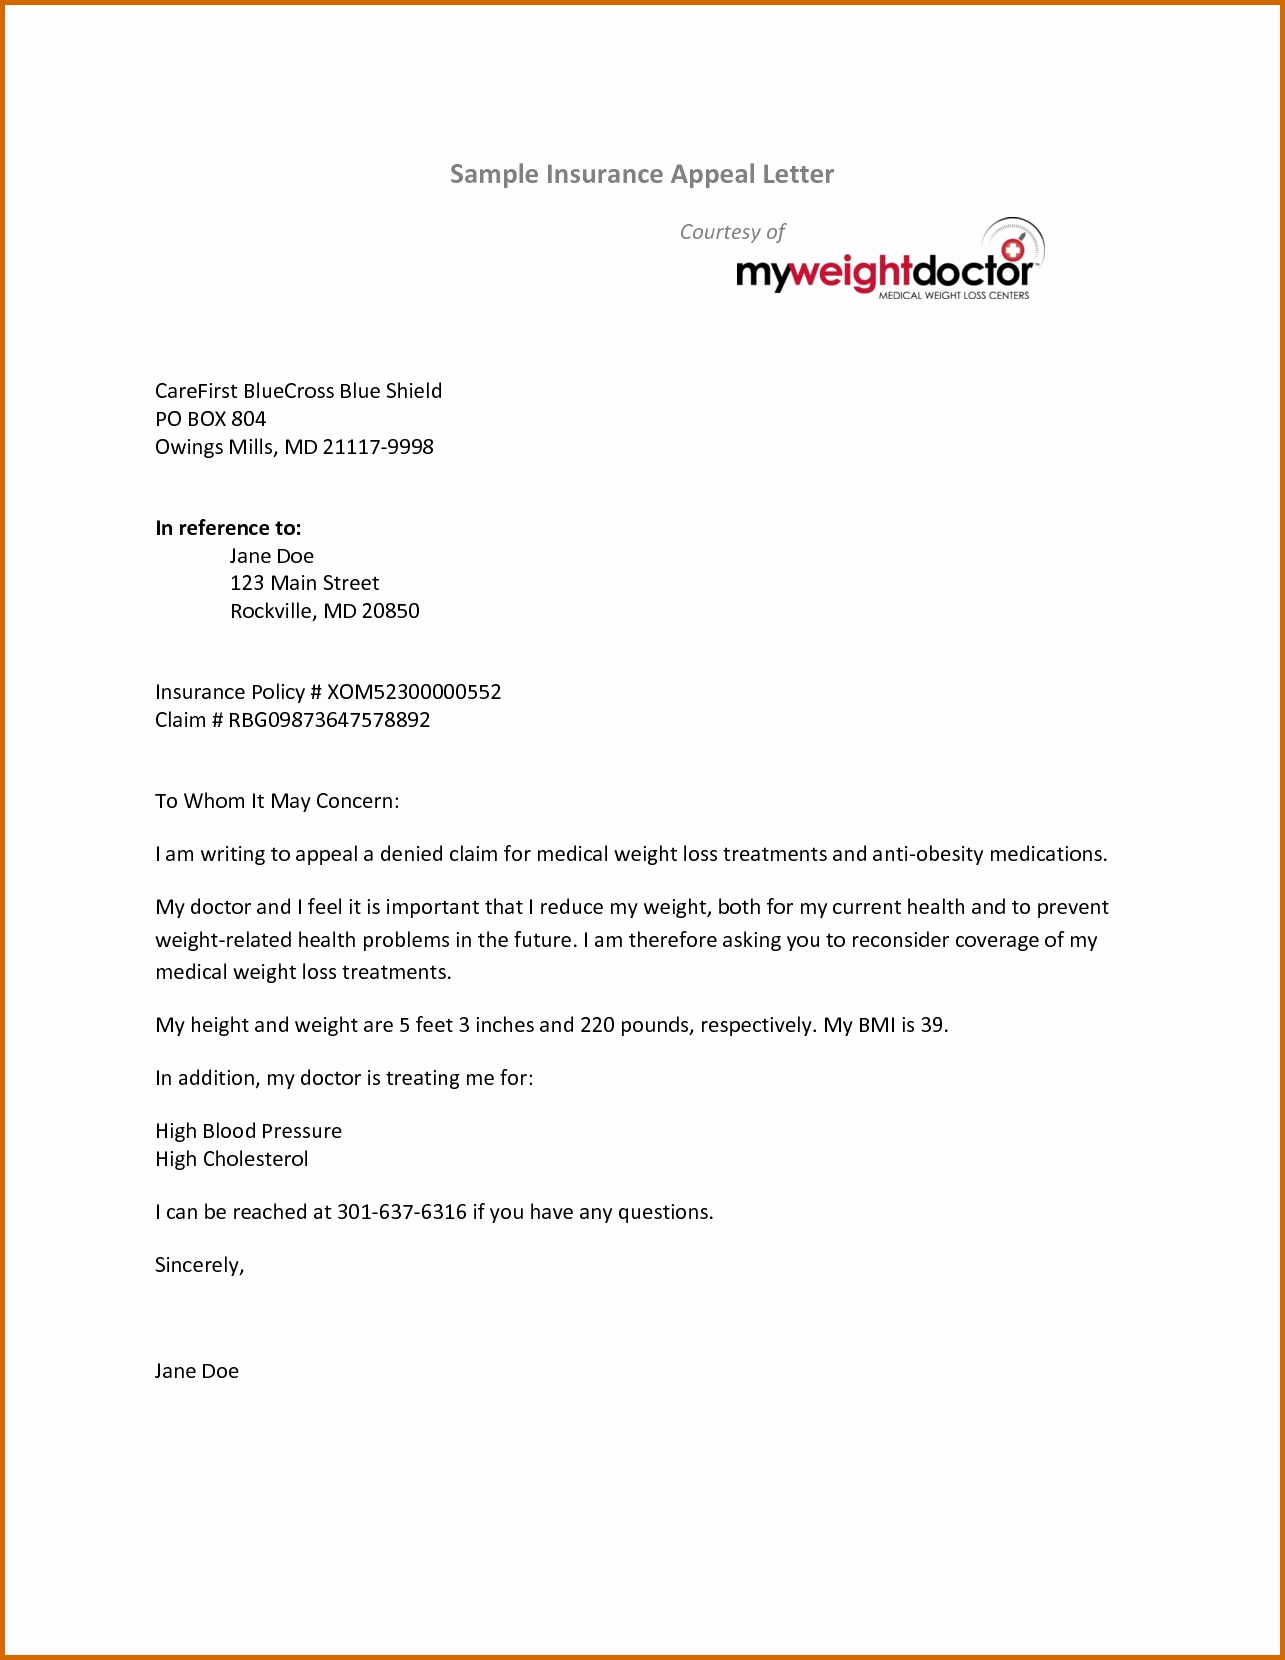 Insurance Cancellation Letter Template - How to Write A Timeshare Cancellation Letter Letter format